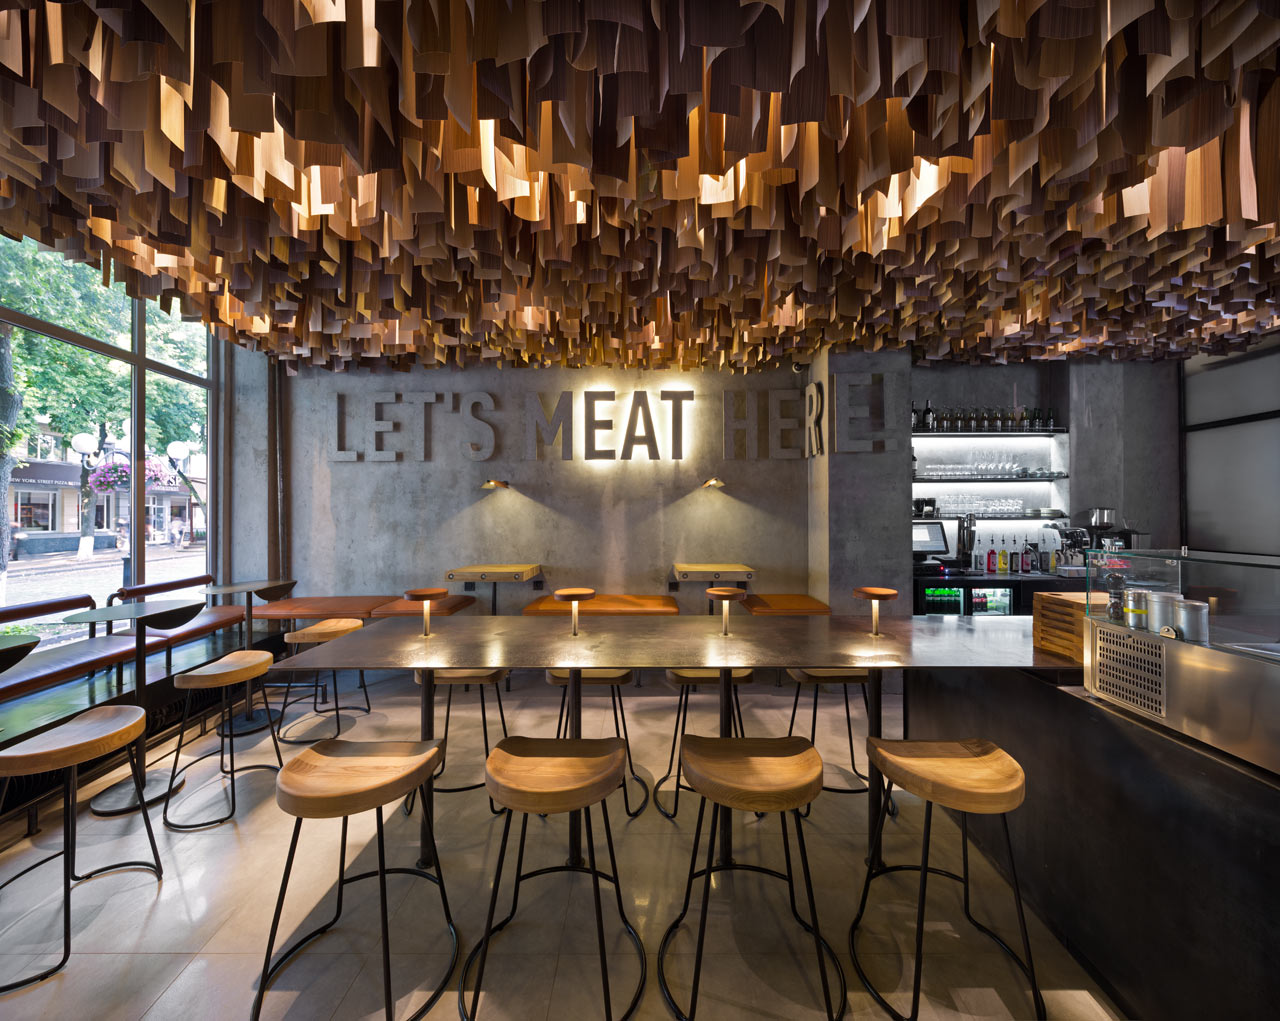 Shade burger restaurant branding interior design grits grids - British interior design style pragmatism comes first ...